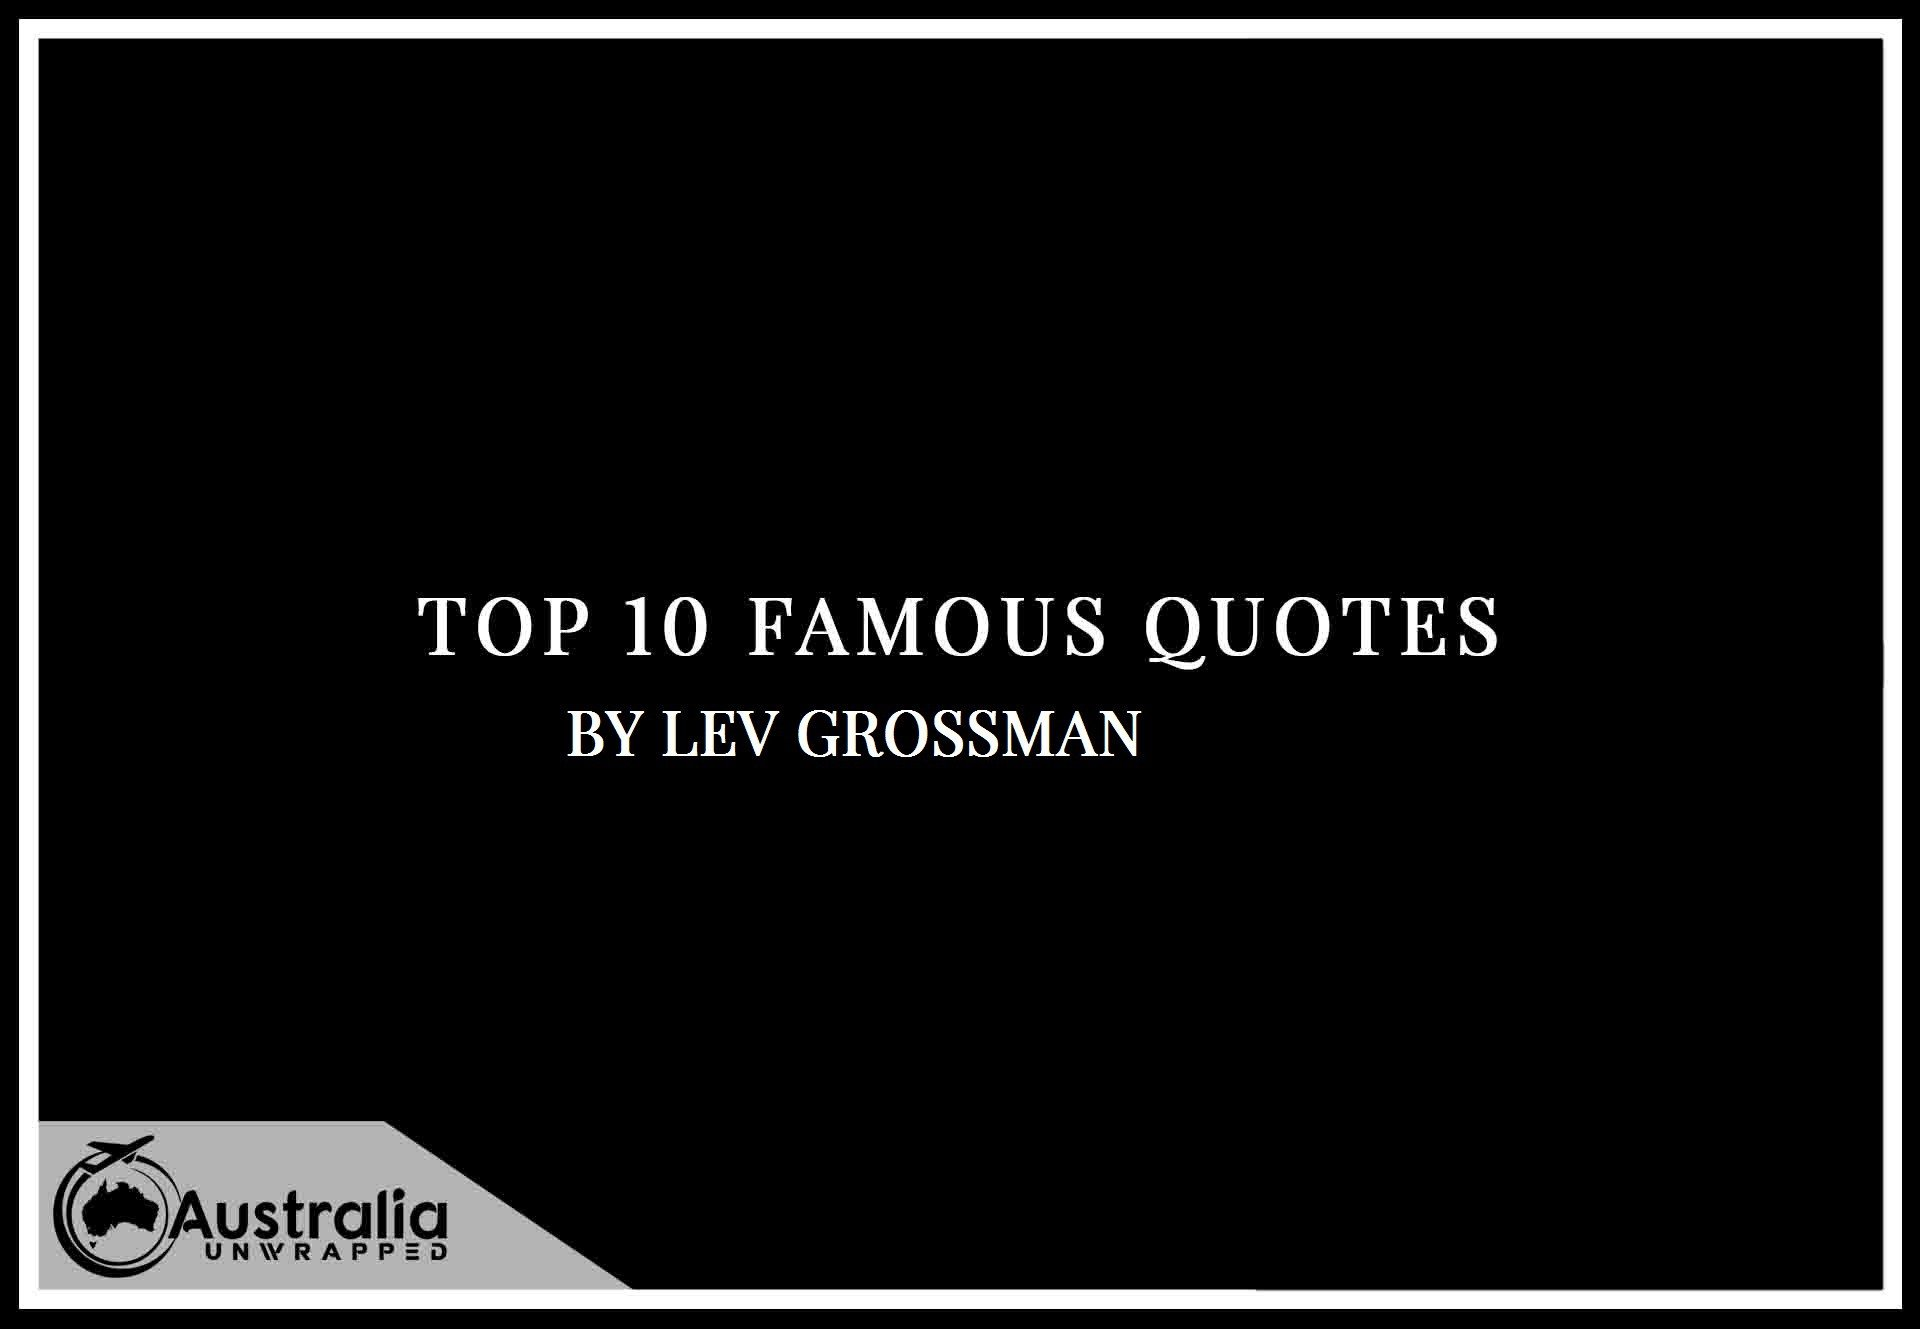 Lev Grossman's Top 10 Popular and Famous Quotes